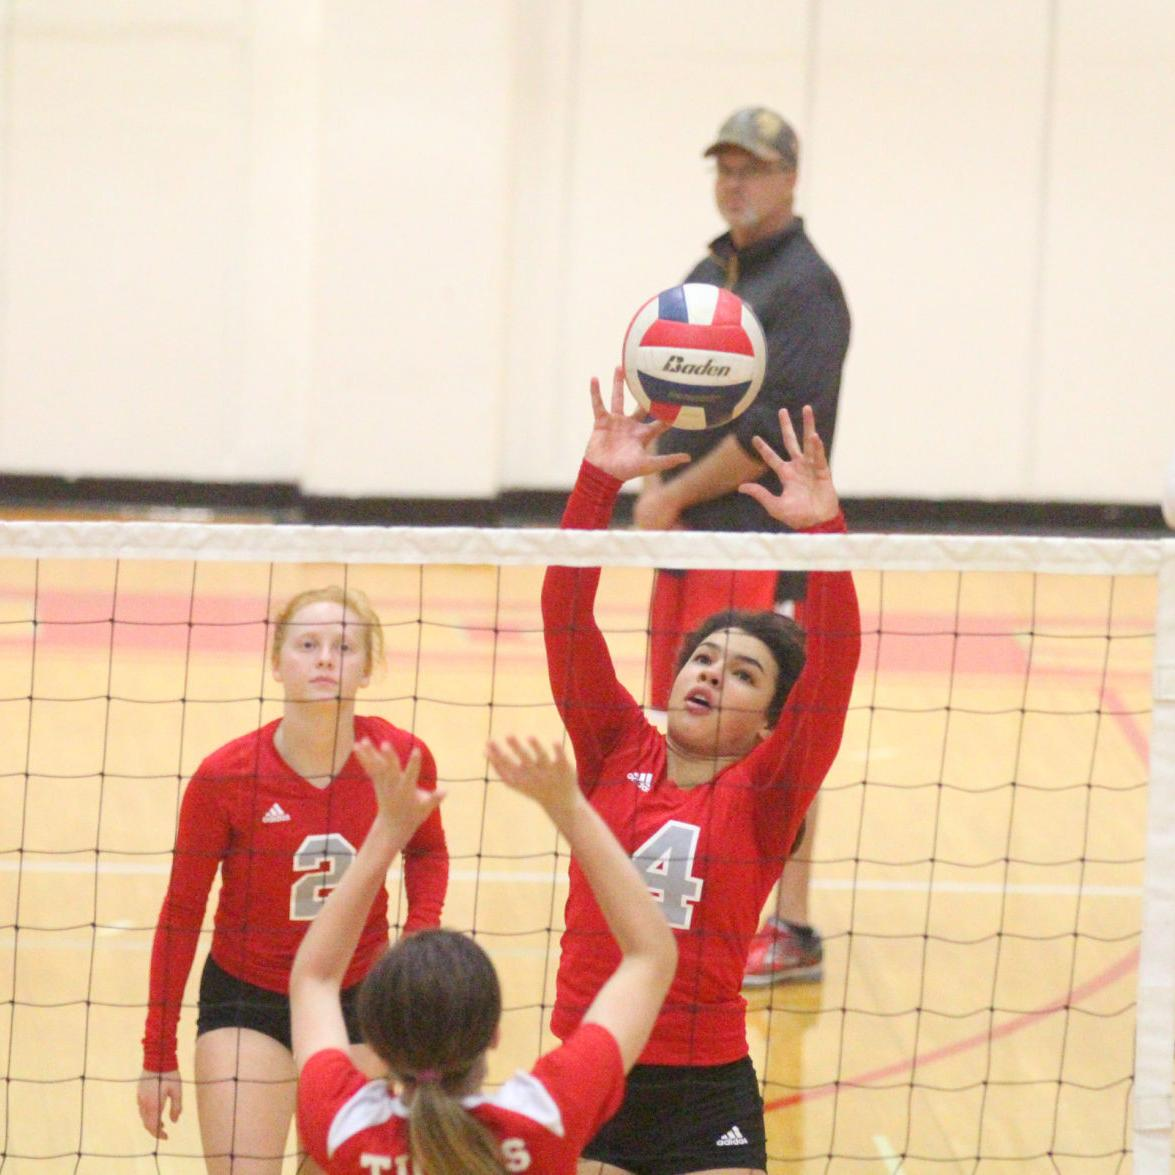 Volleyball — St. Clair vs. St. James